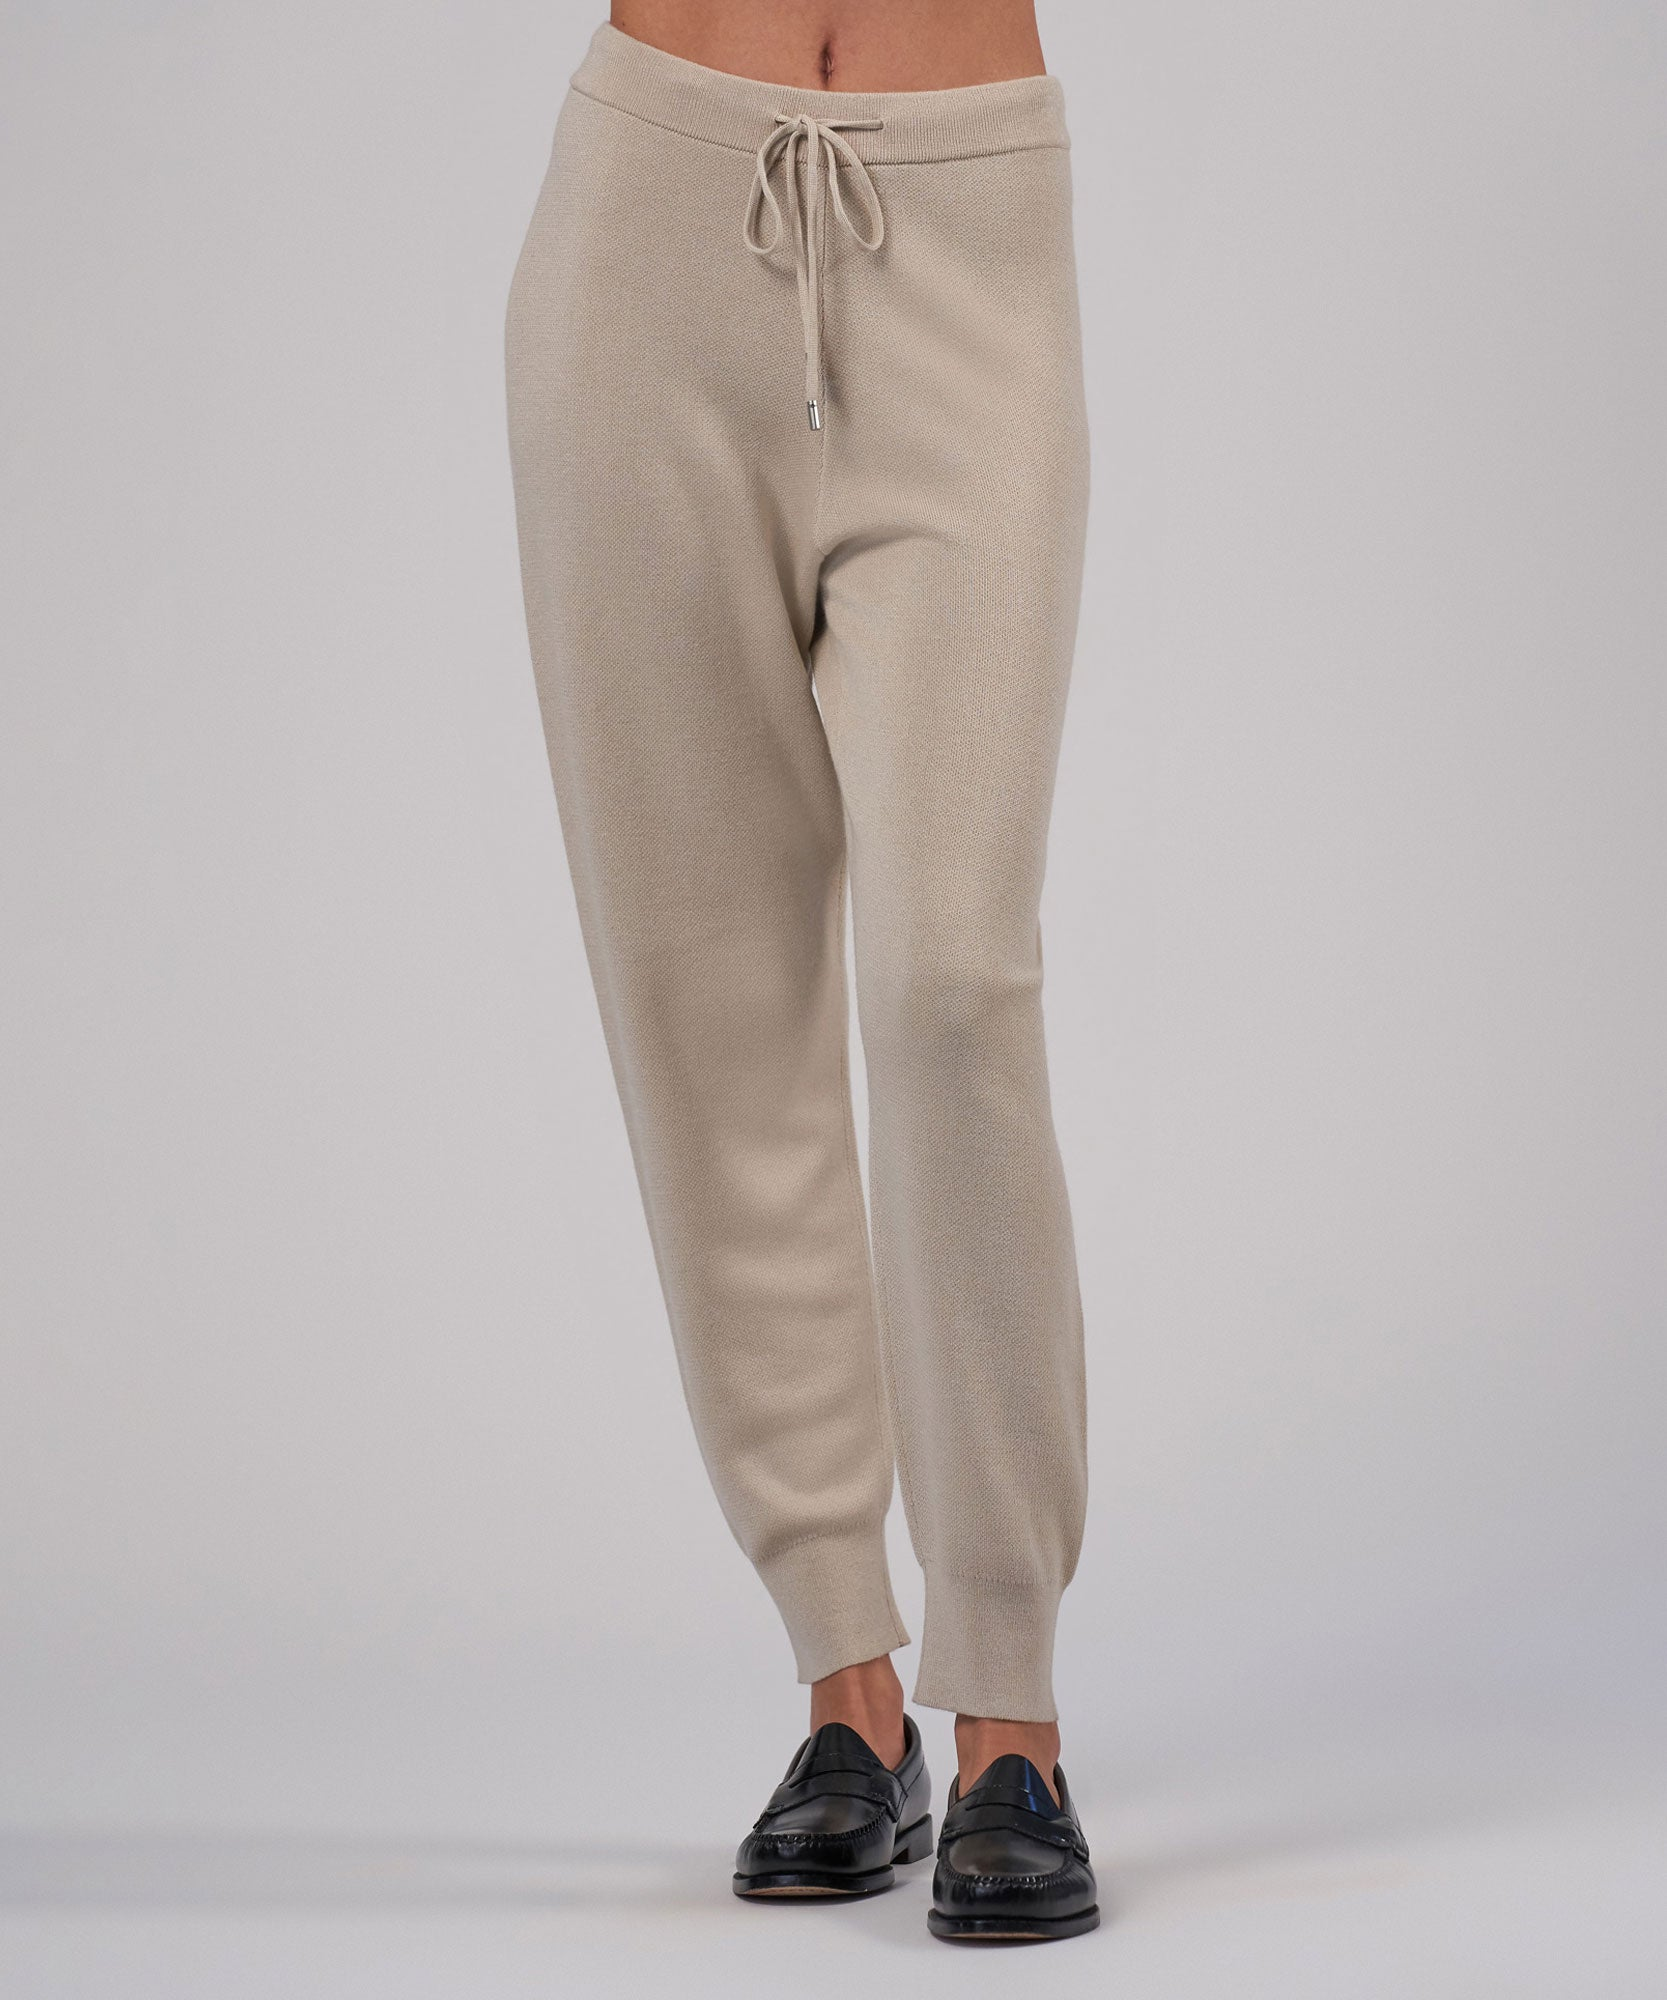 Canvas Cashmere Silk Pull-On Pant - Women's Pants by ATM Anthony Thomas Melillo